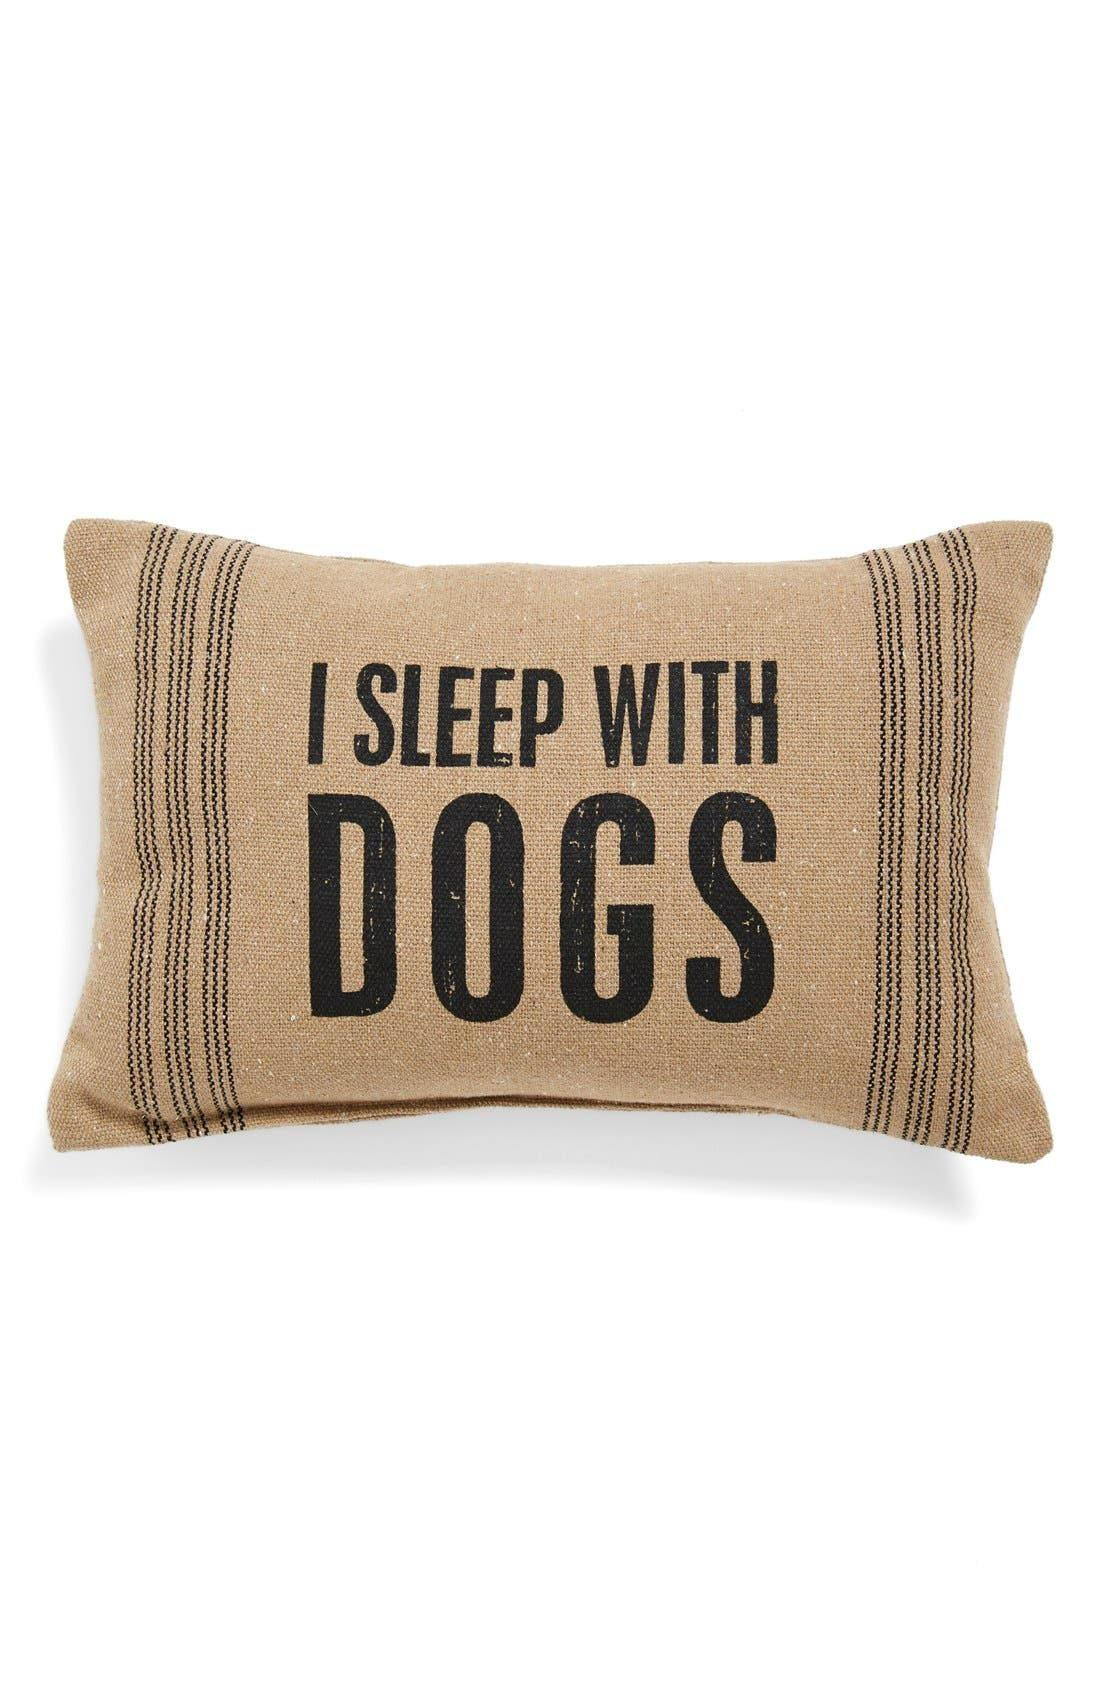 'I Sleep With Dogs' Pillow,                             Main thumbnail 1, color,                             250